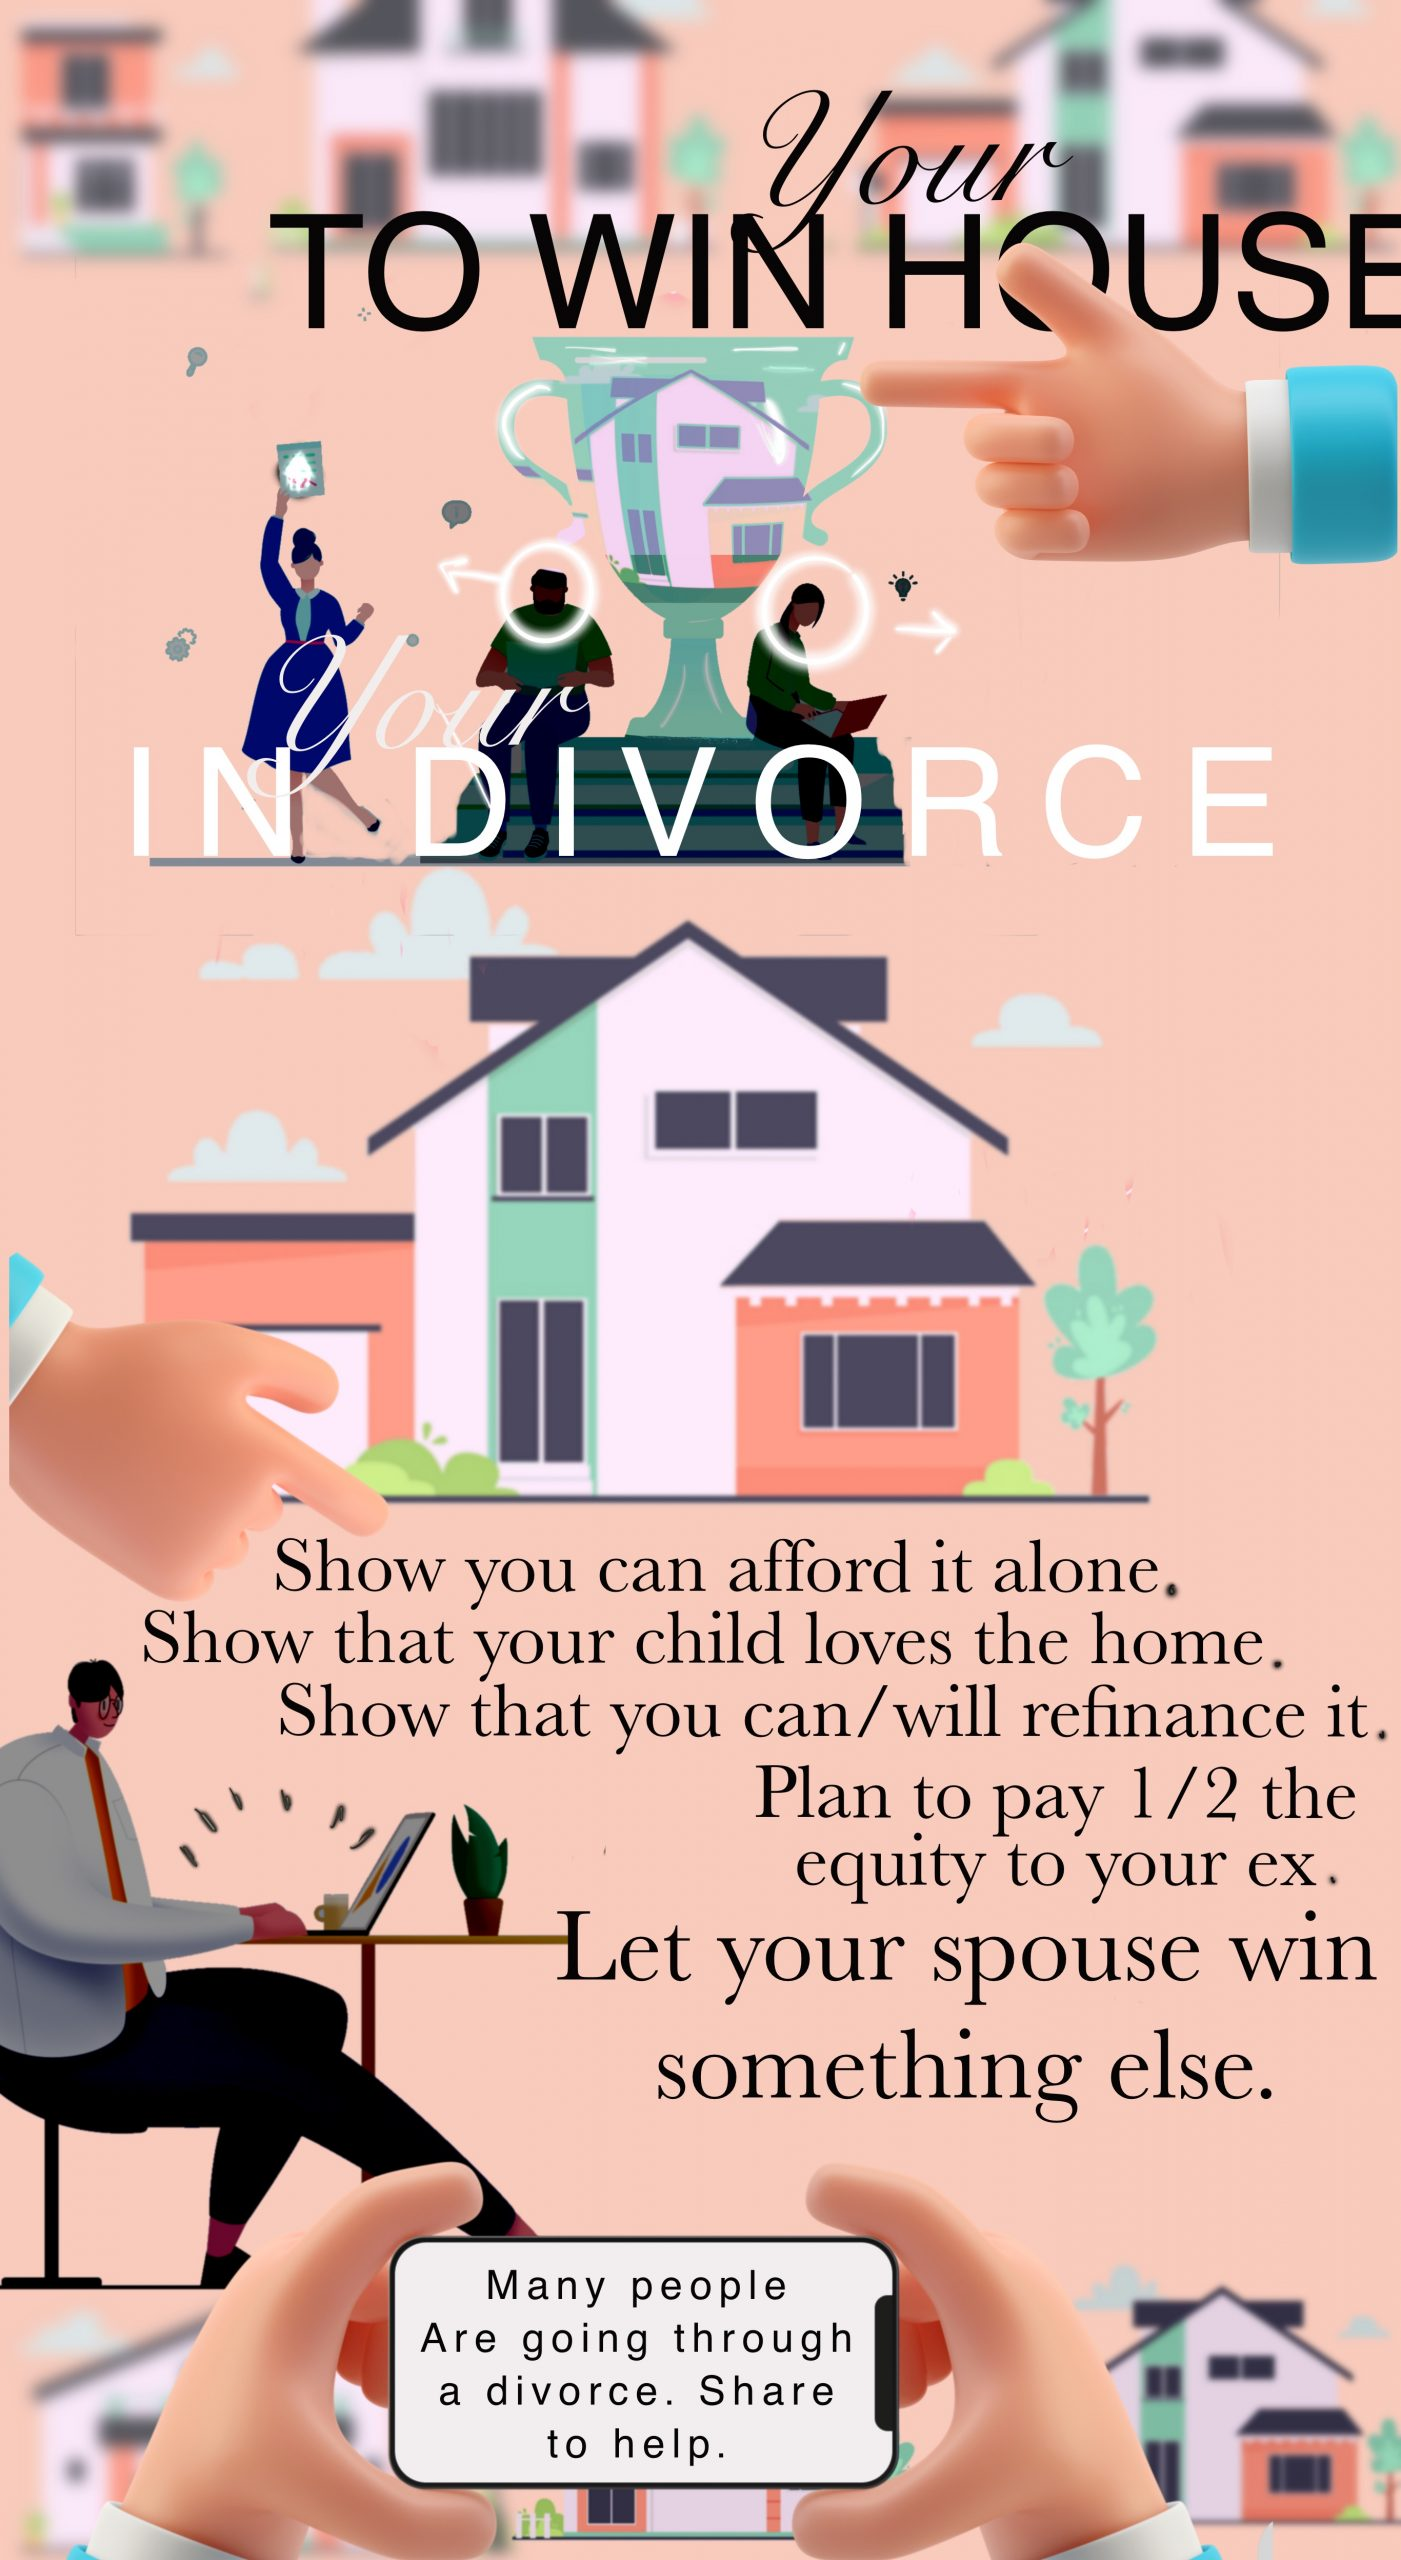 How to win the house in divorce texas infographic